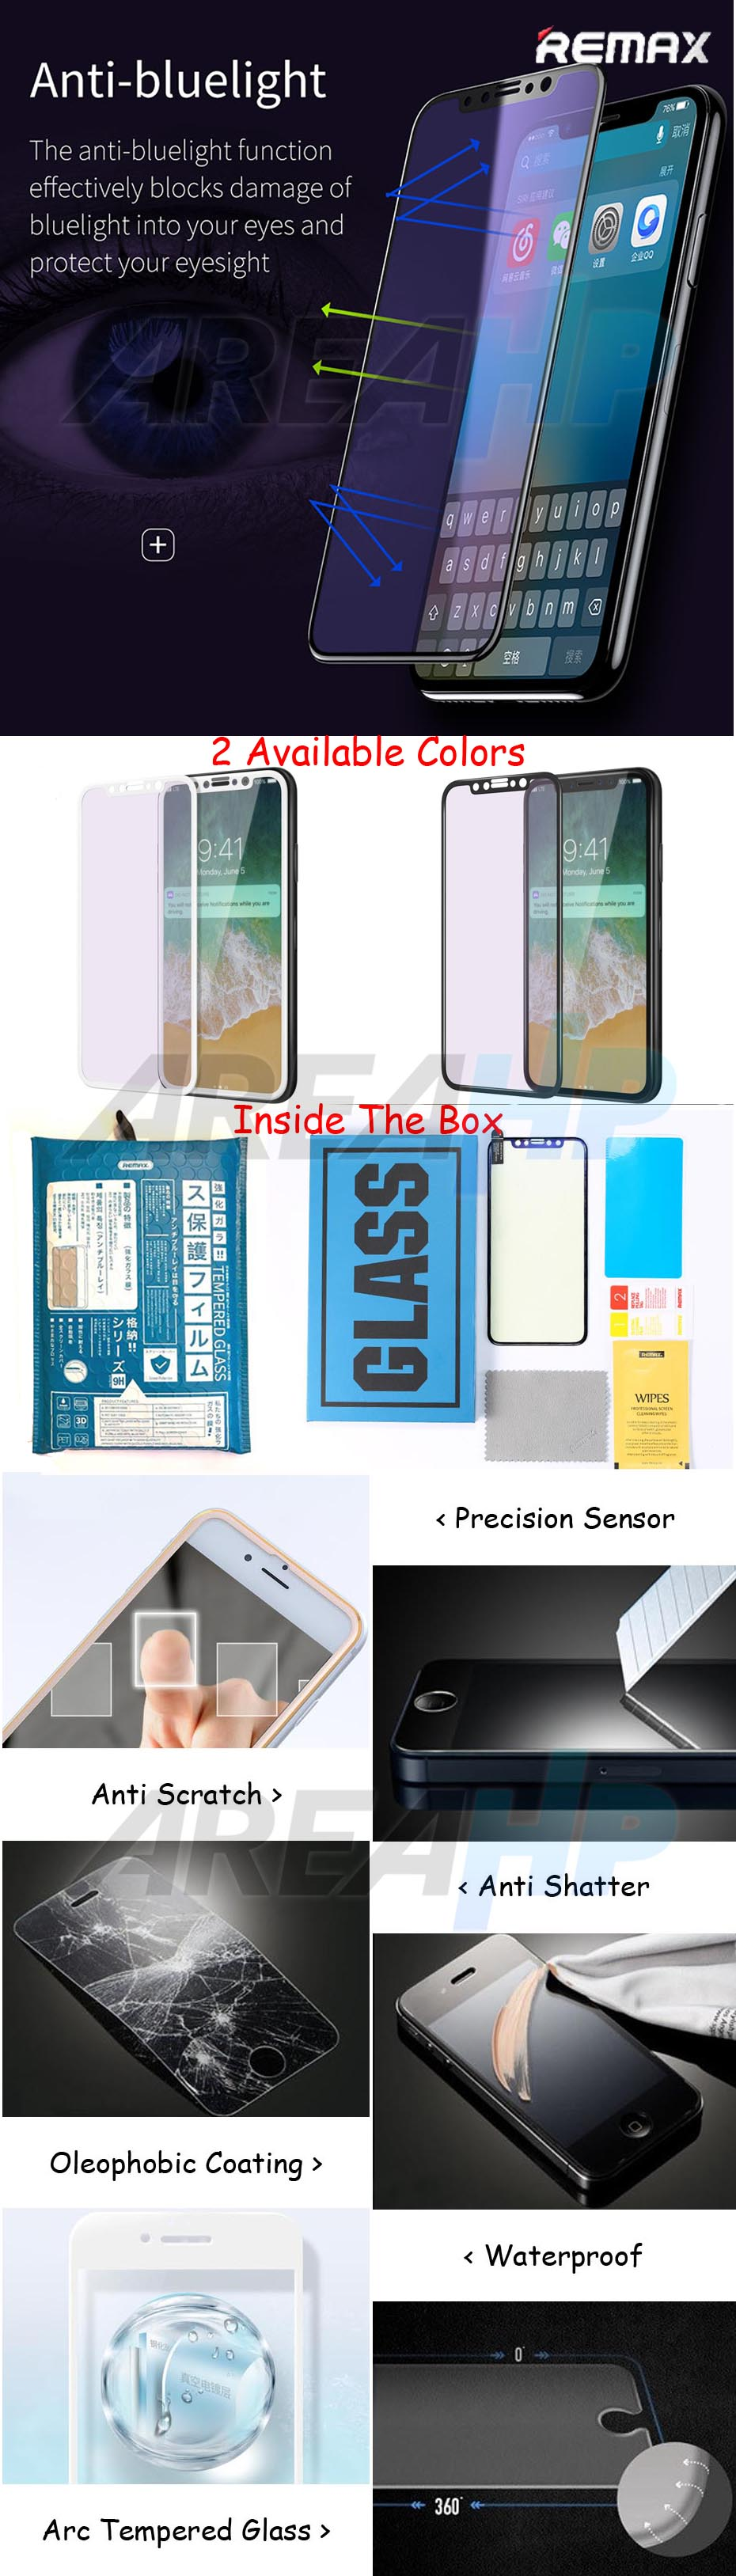 Remax Gener Anti Radiasi Blue Ray Tempered Glass iPhone GL-05 Overview